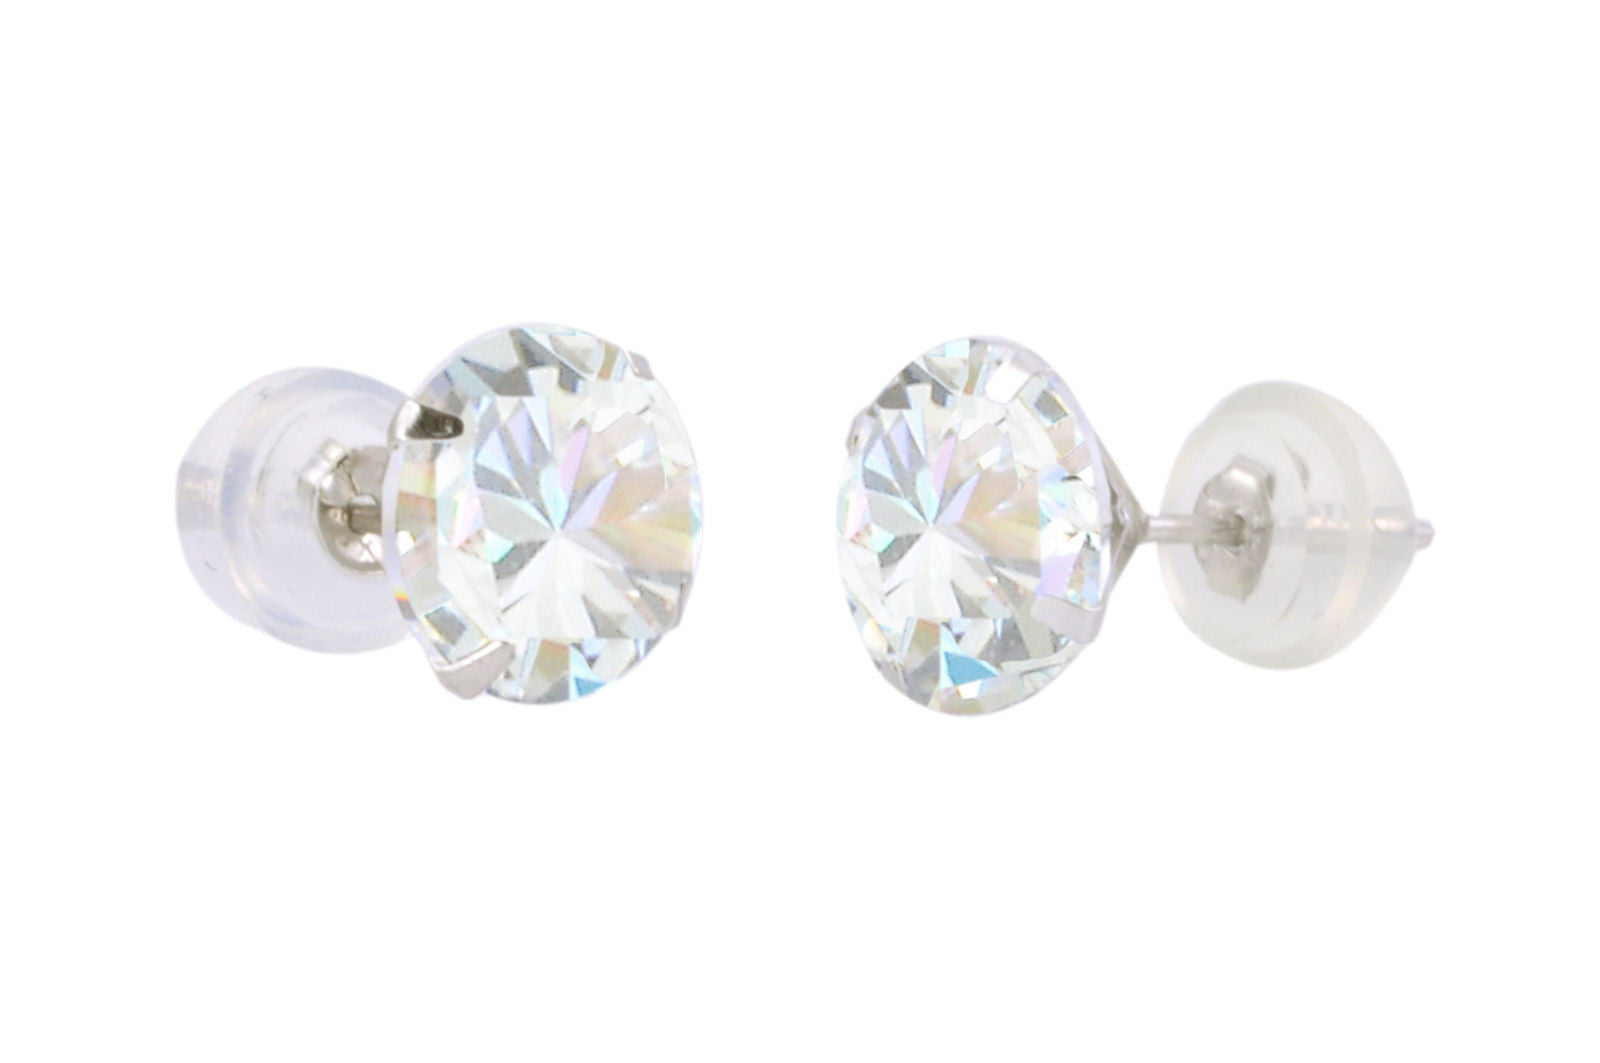 0d456aac1 14k White Gold Round CZ Cubic Zirconia Stud Earrings with Safety Silicone  Backs